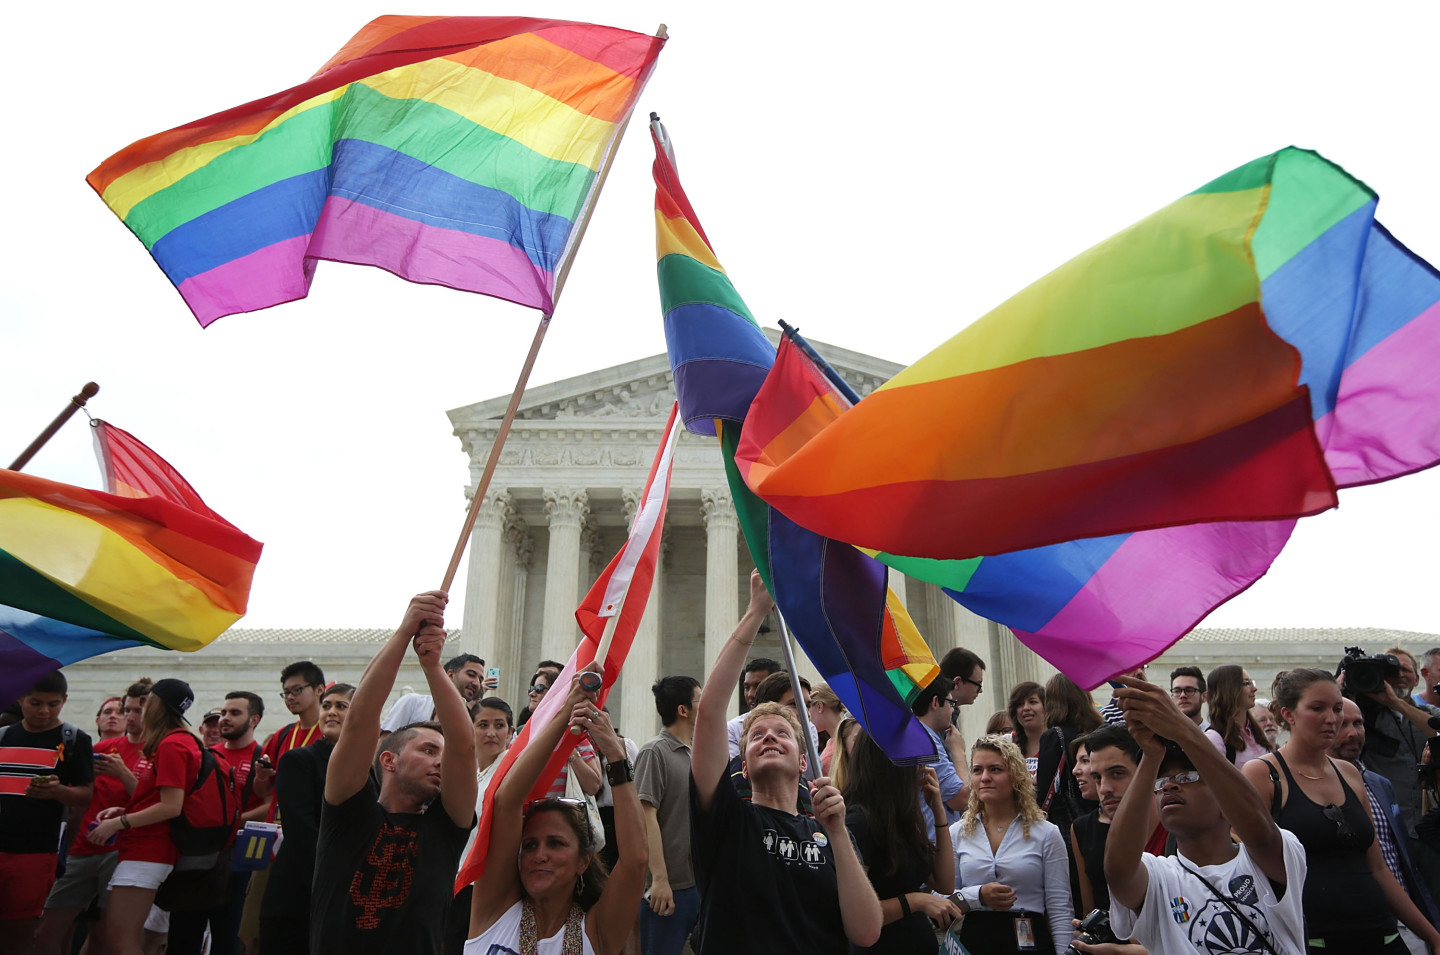 The Rhythm of Pride: How Marriage Equality Swept the Nation One Year Ago